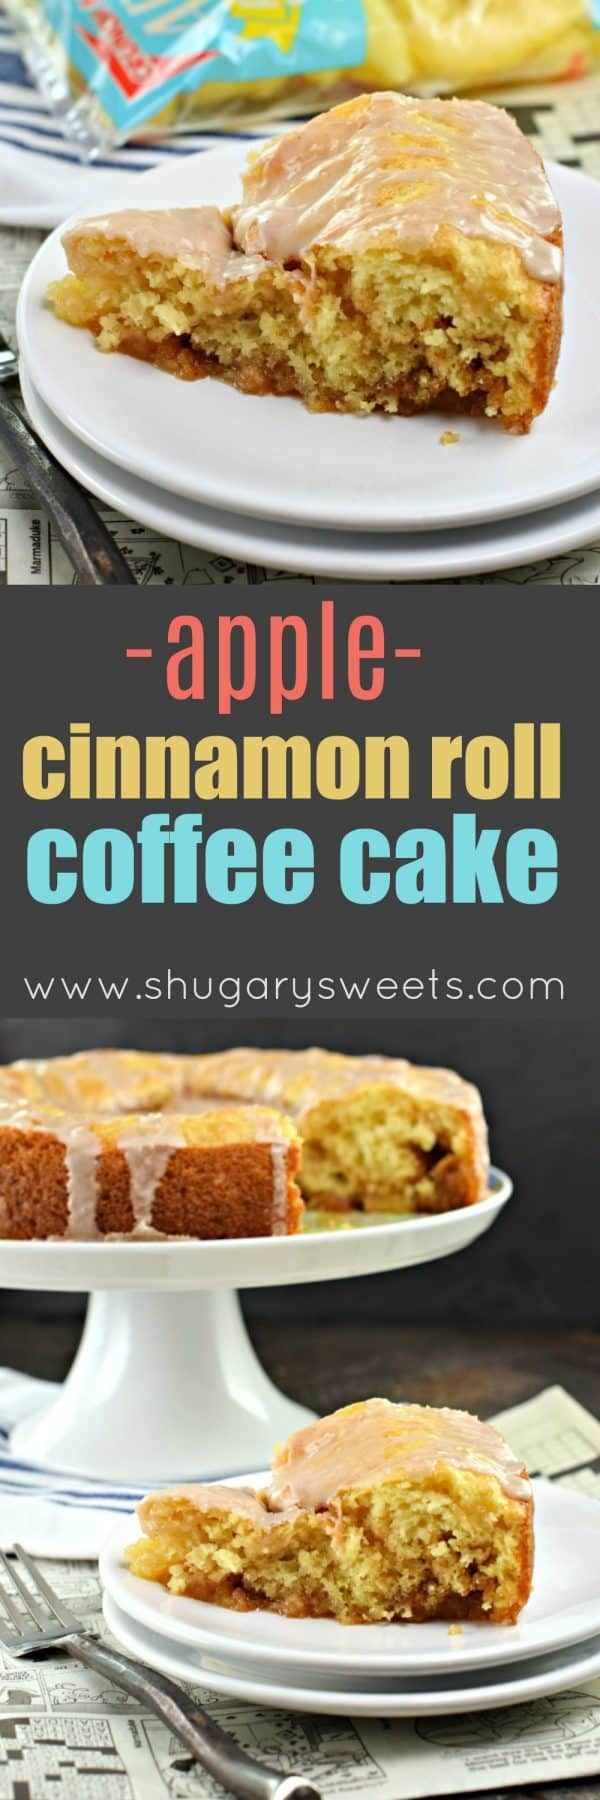 Apple Cinnamon Roll Coffee Cake #breakfast #brunch #coffeecake #cake #cinnamonroll